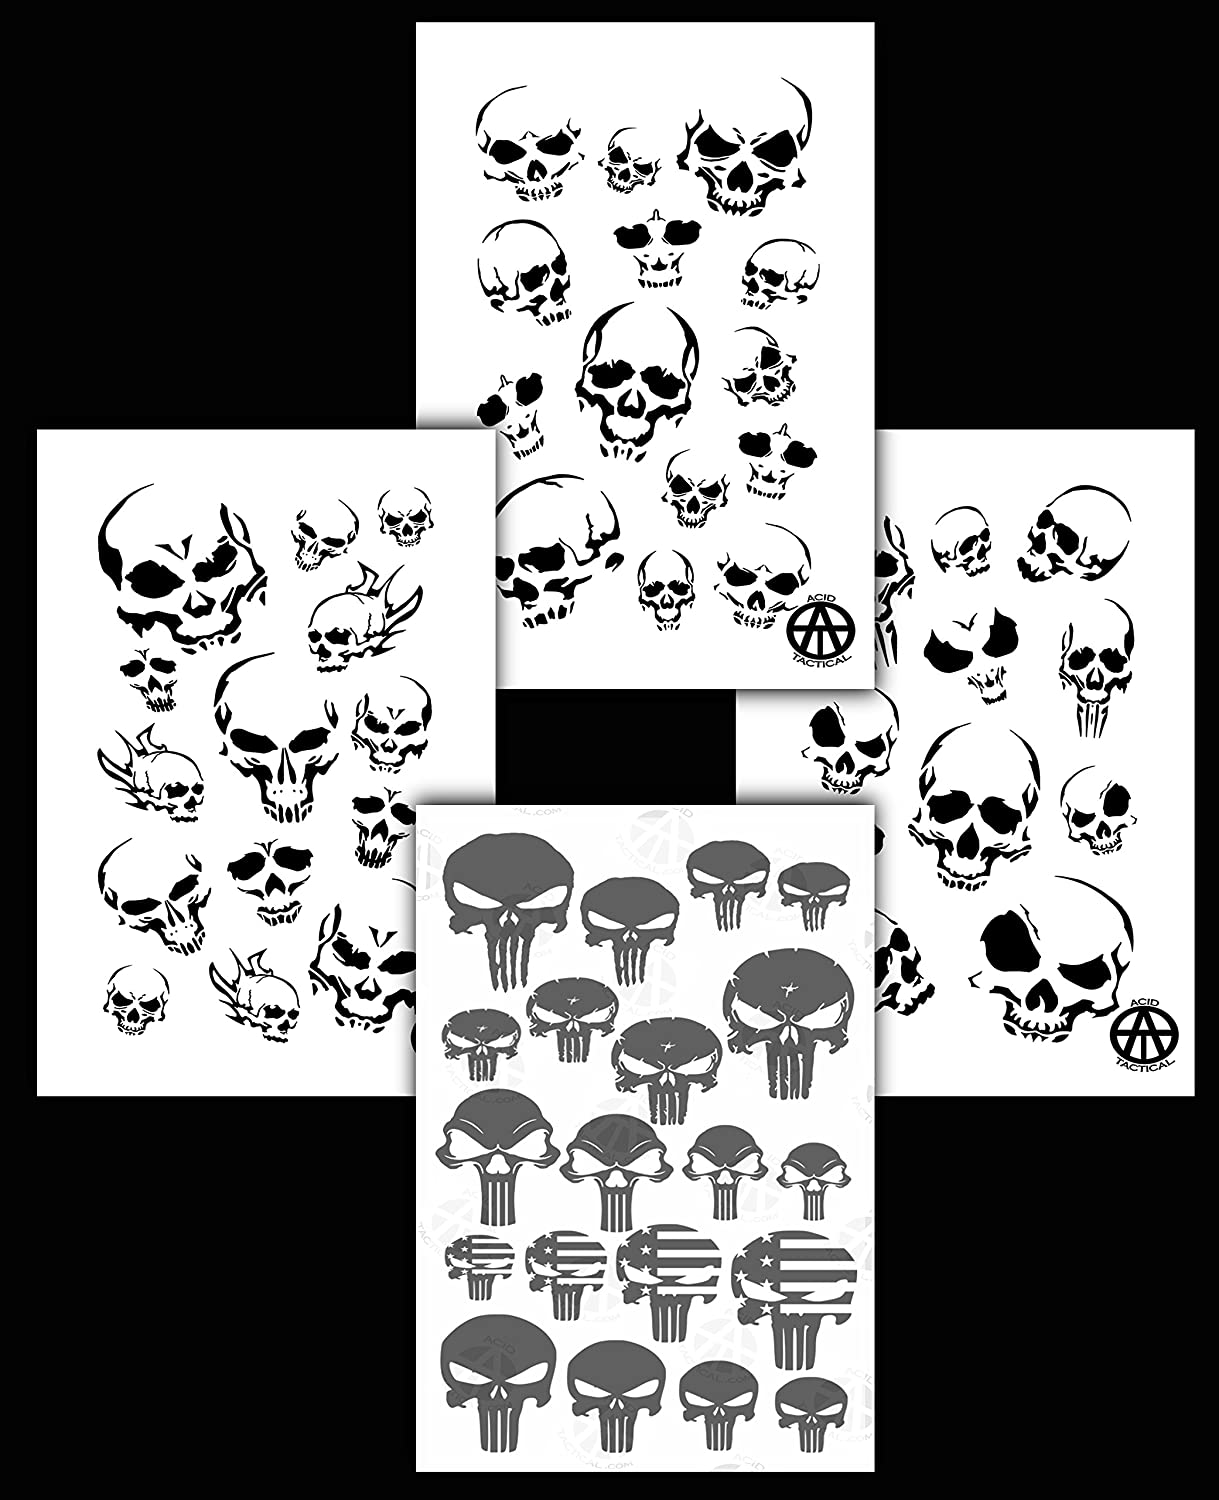 Acid Tactical® 4PK Camouflage Spray Paint Camo Gun Stencils Adhesive & Mylar Punisher & Skulls